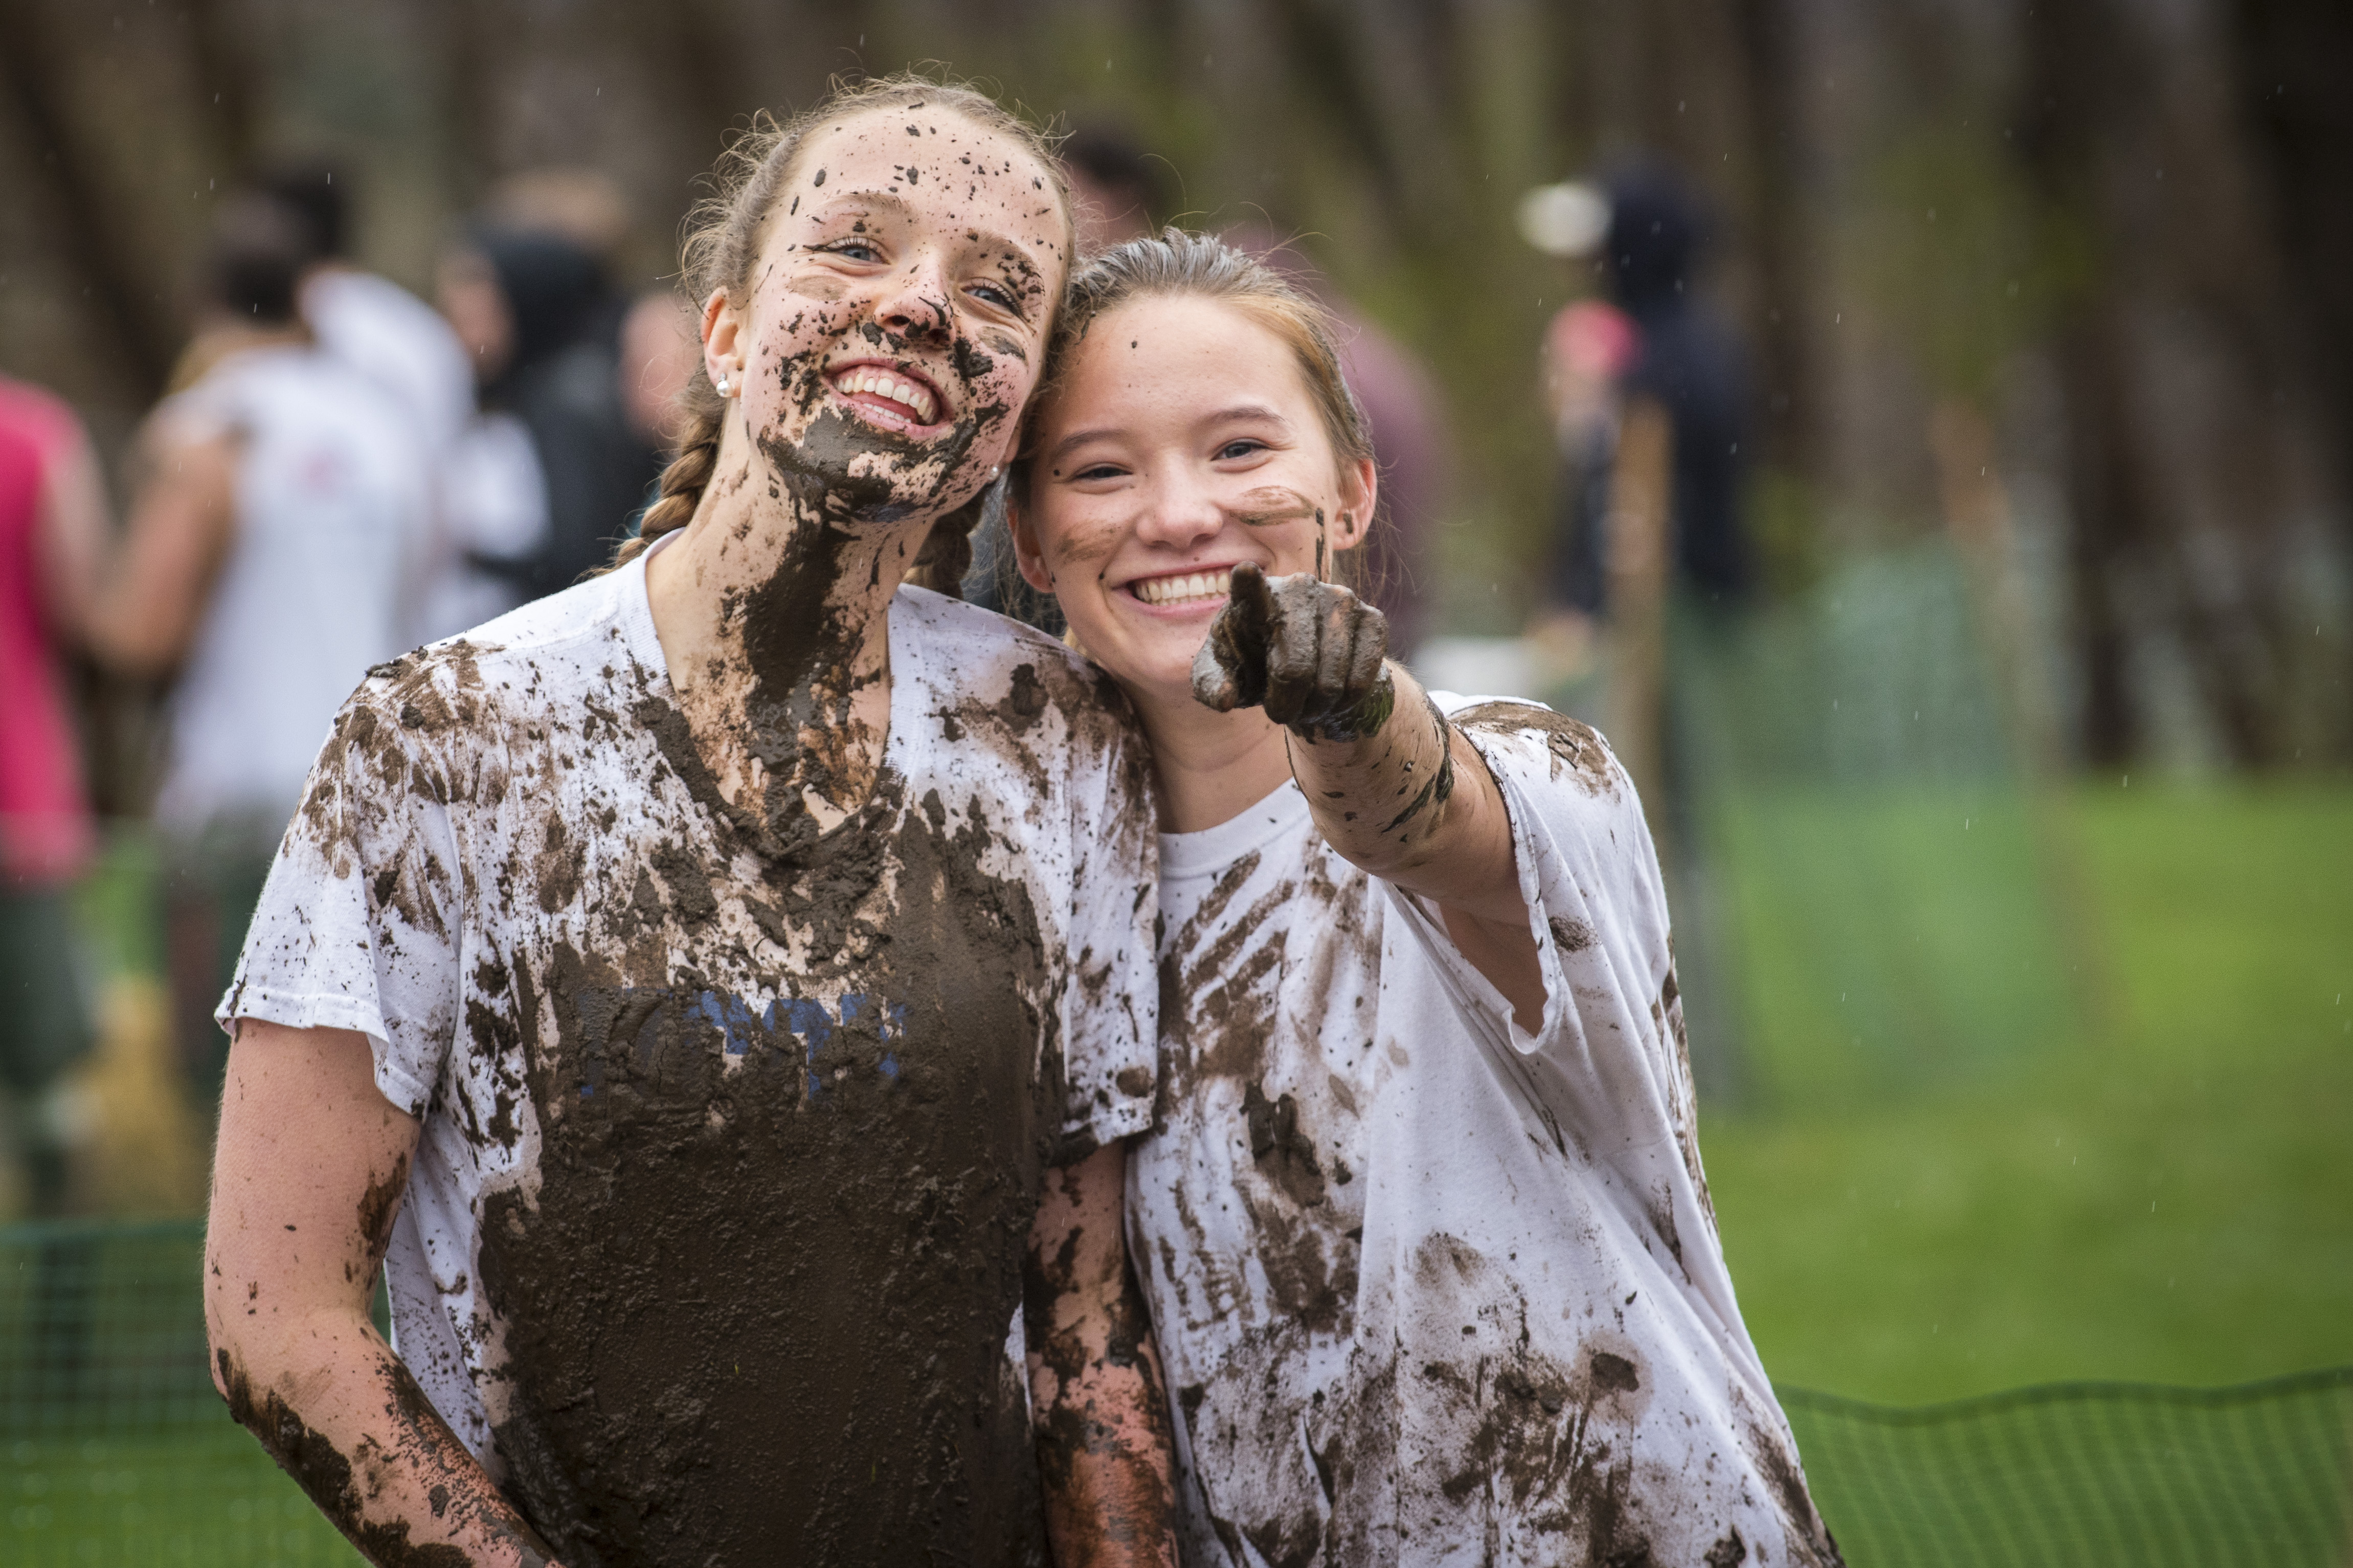 OOzeball: When the Mud Sticks